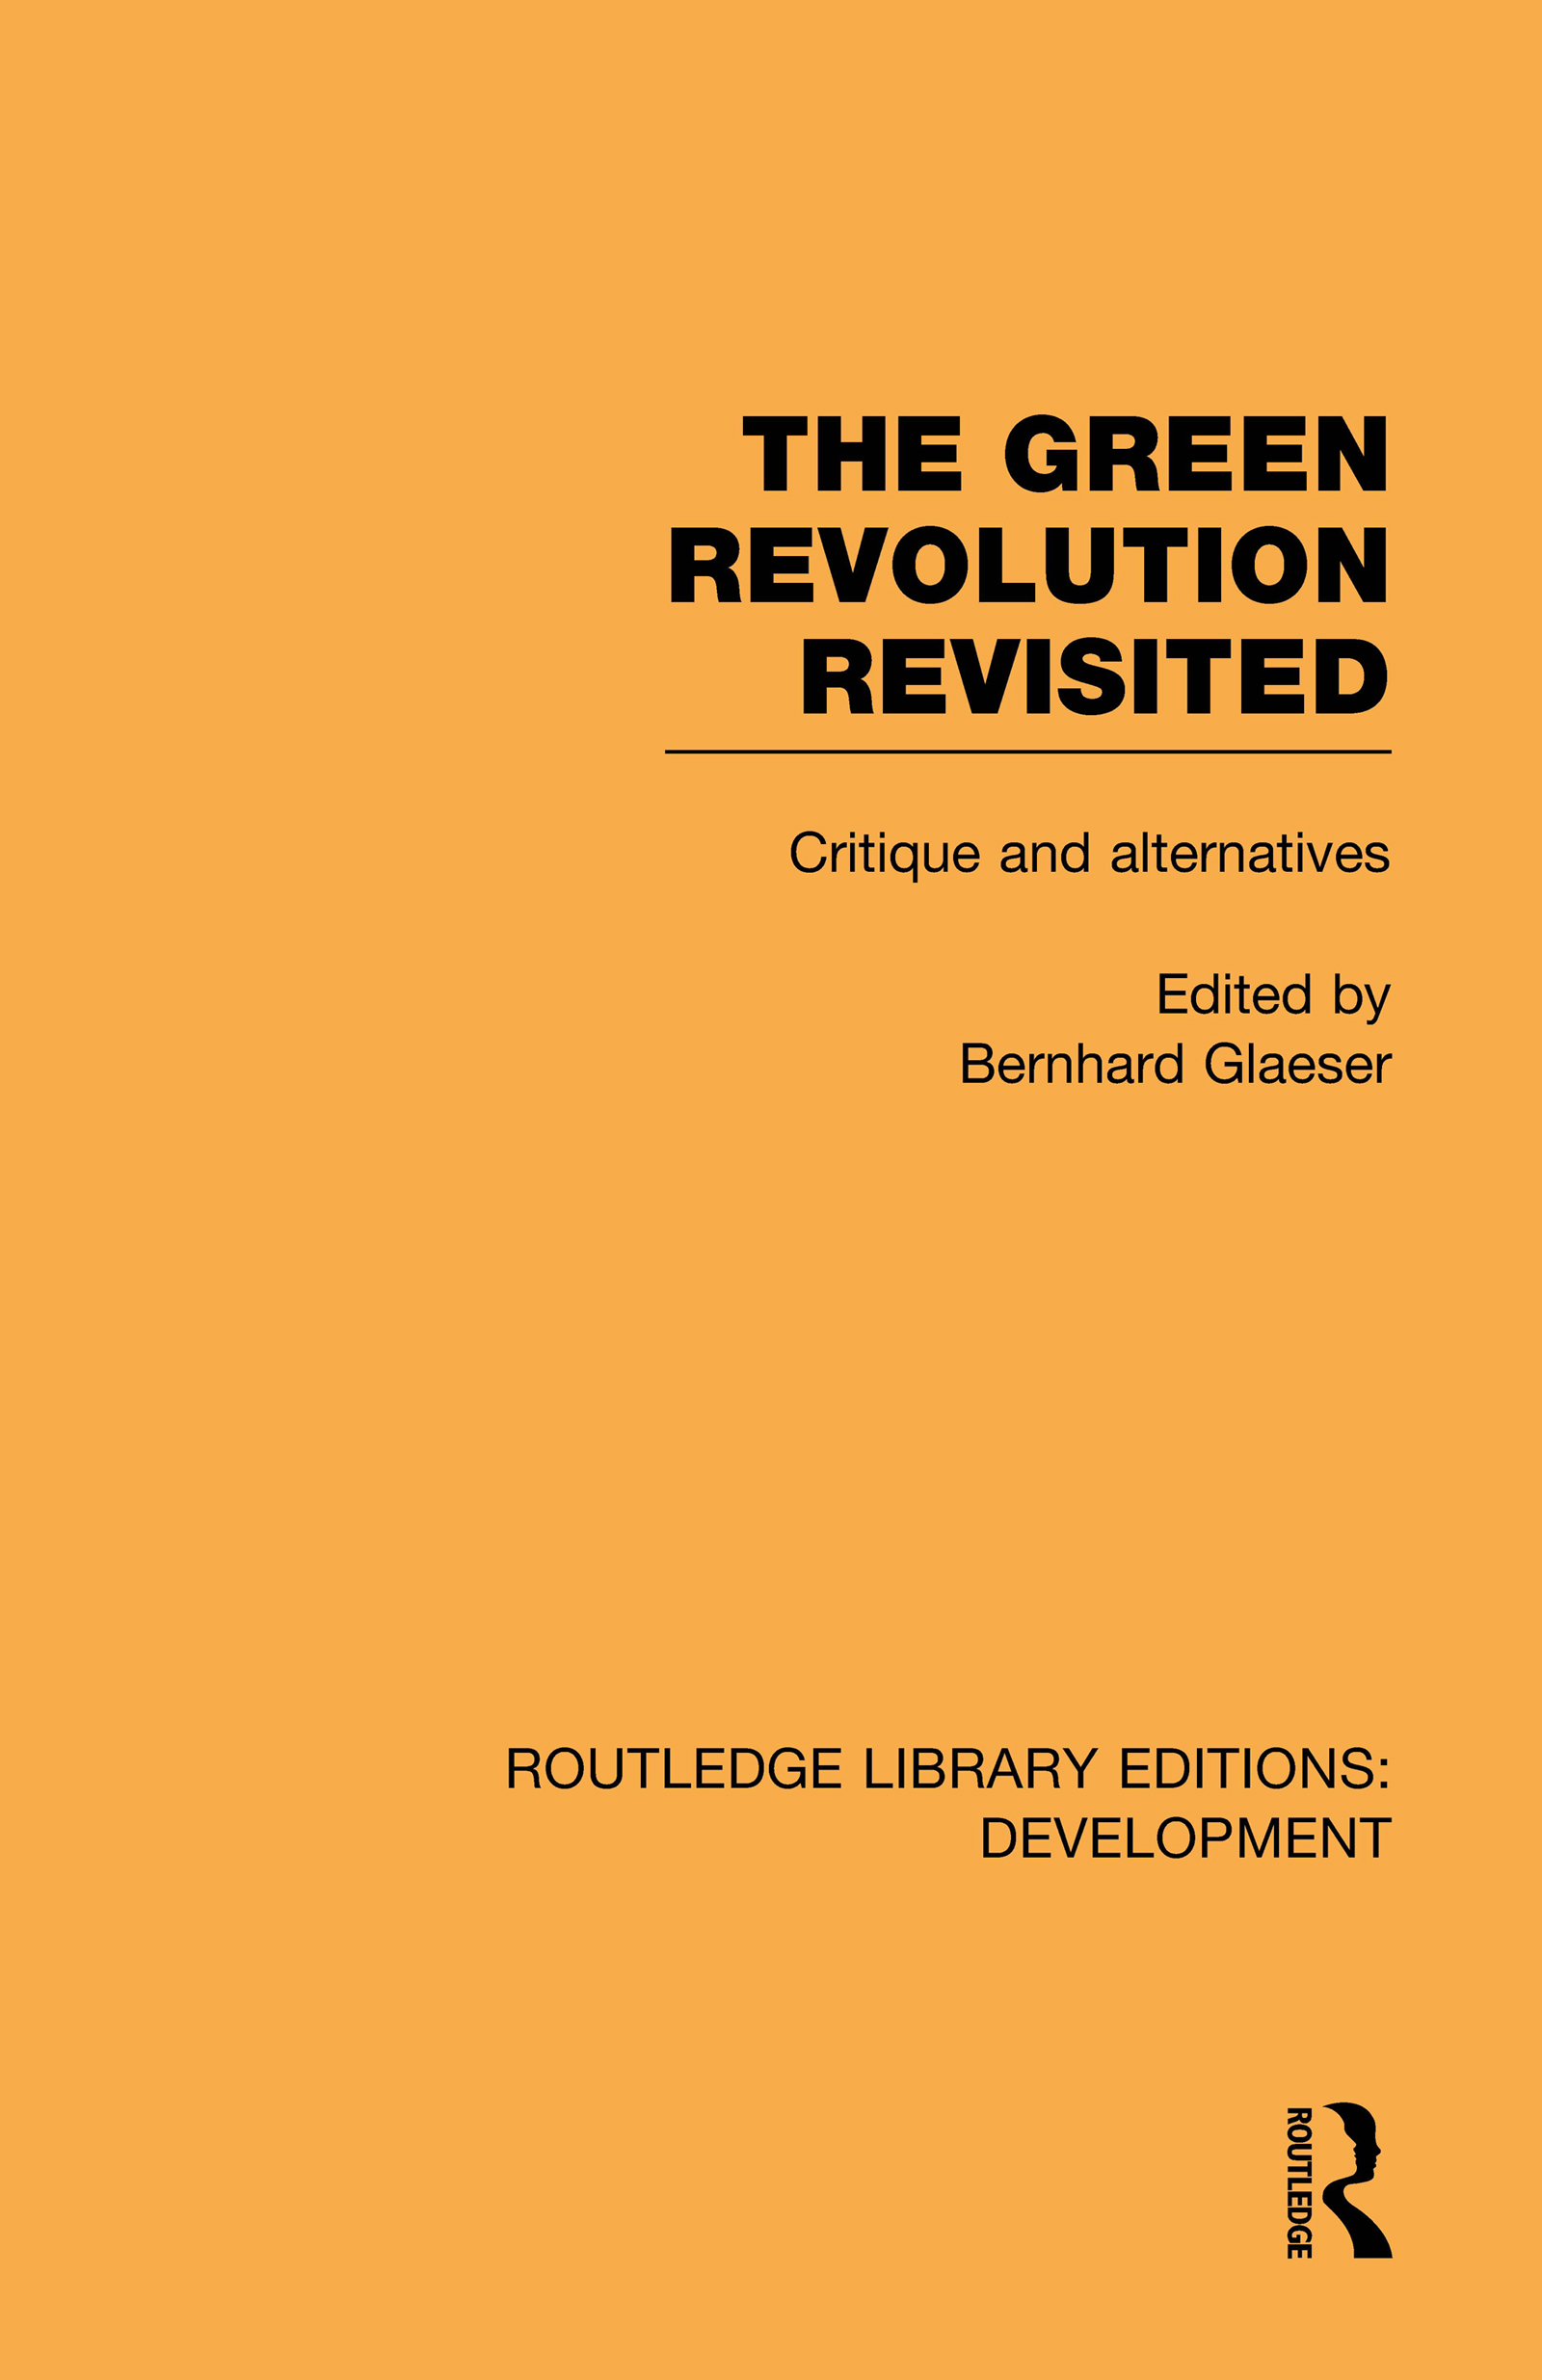 The Green Revolution Revisited